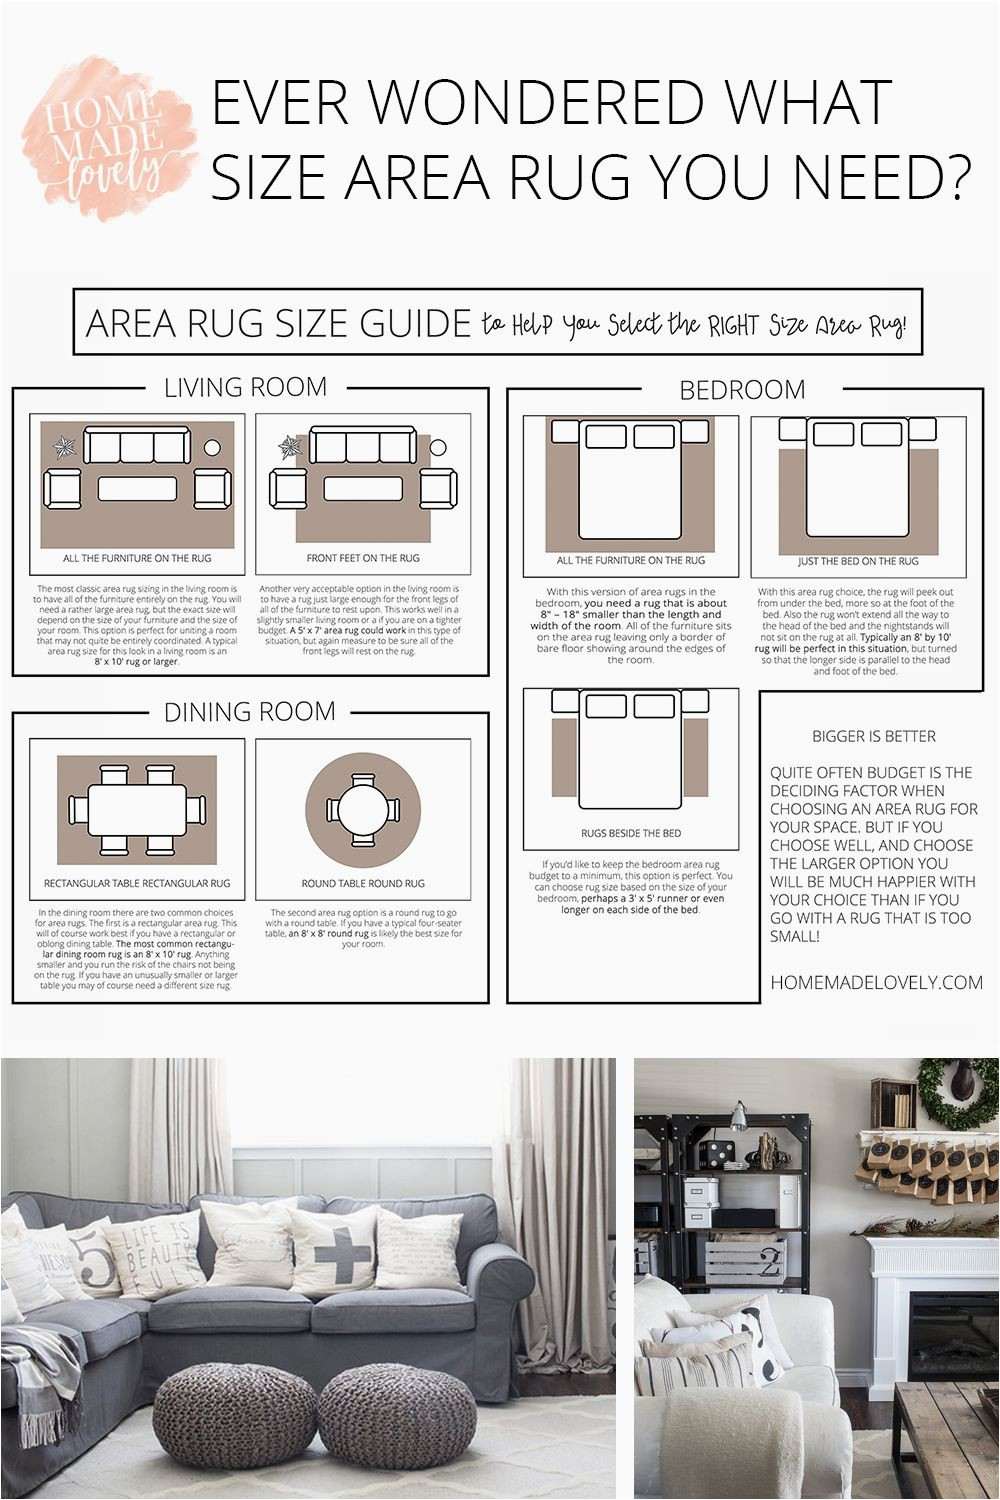 Large area Rugs at Big Lots area Rug Size Guide to Help You Select the Right Size area